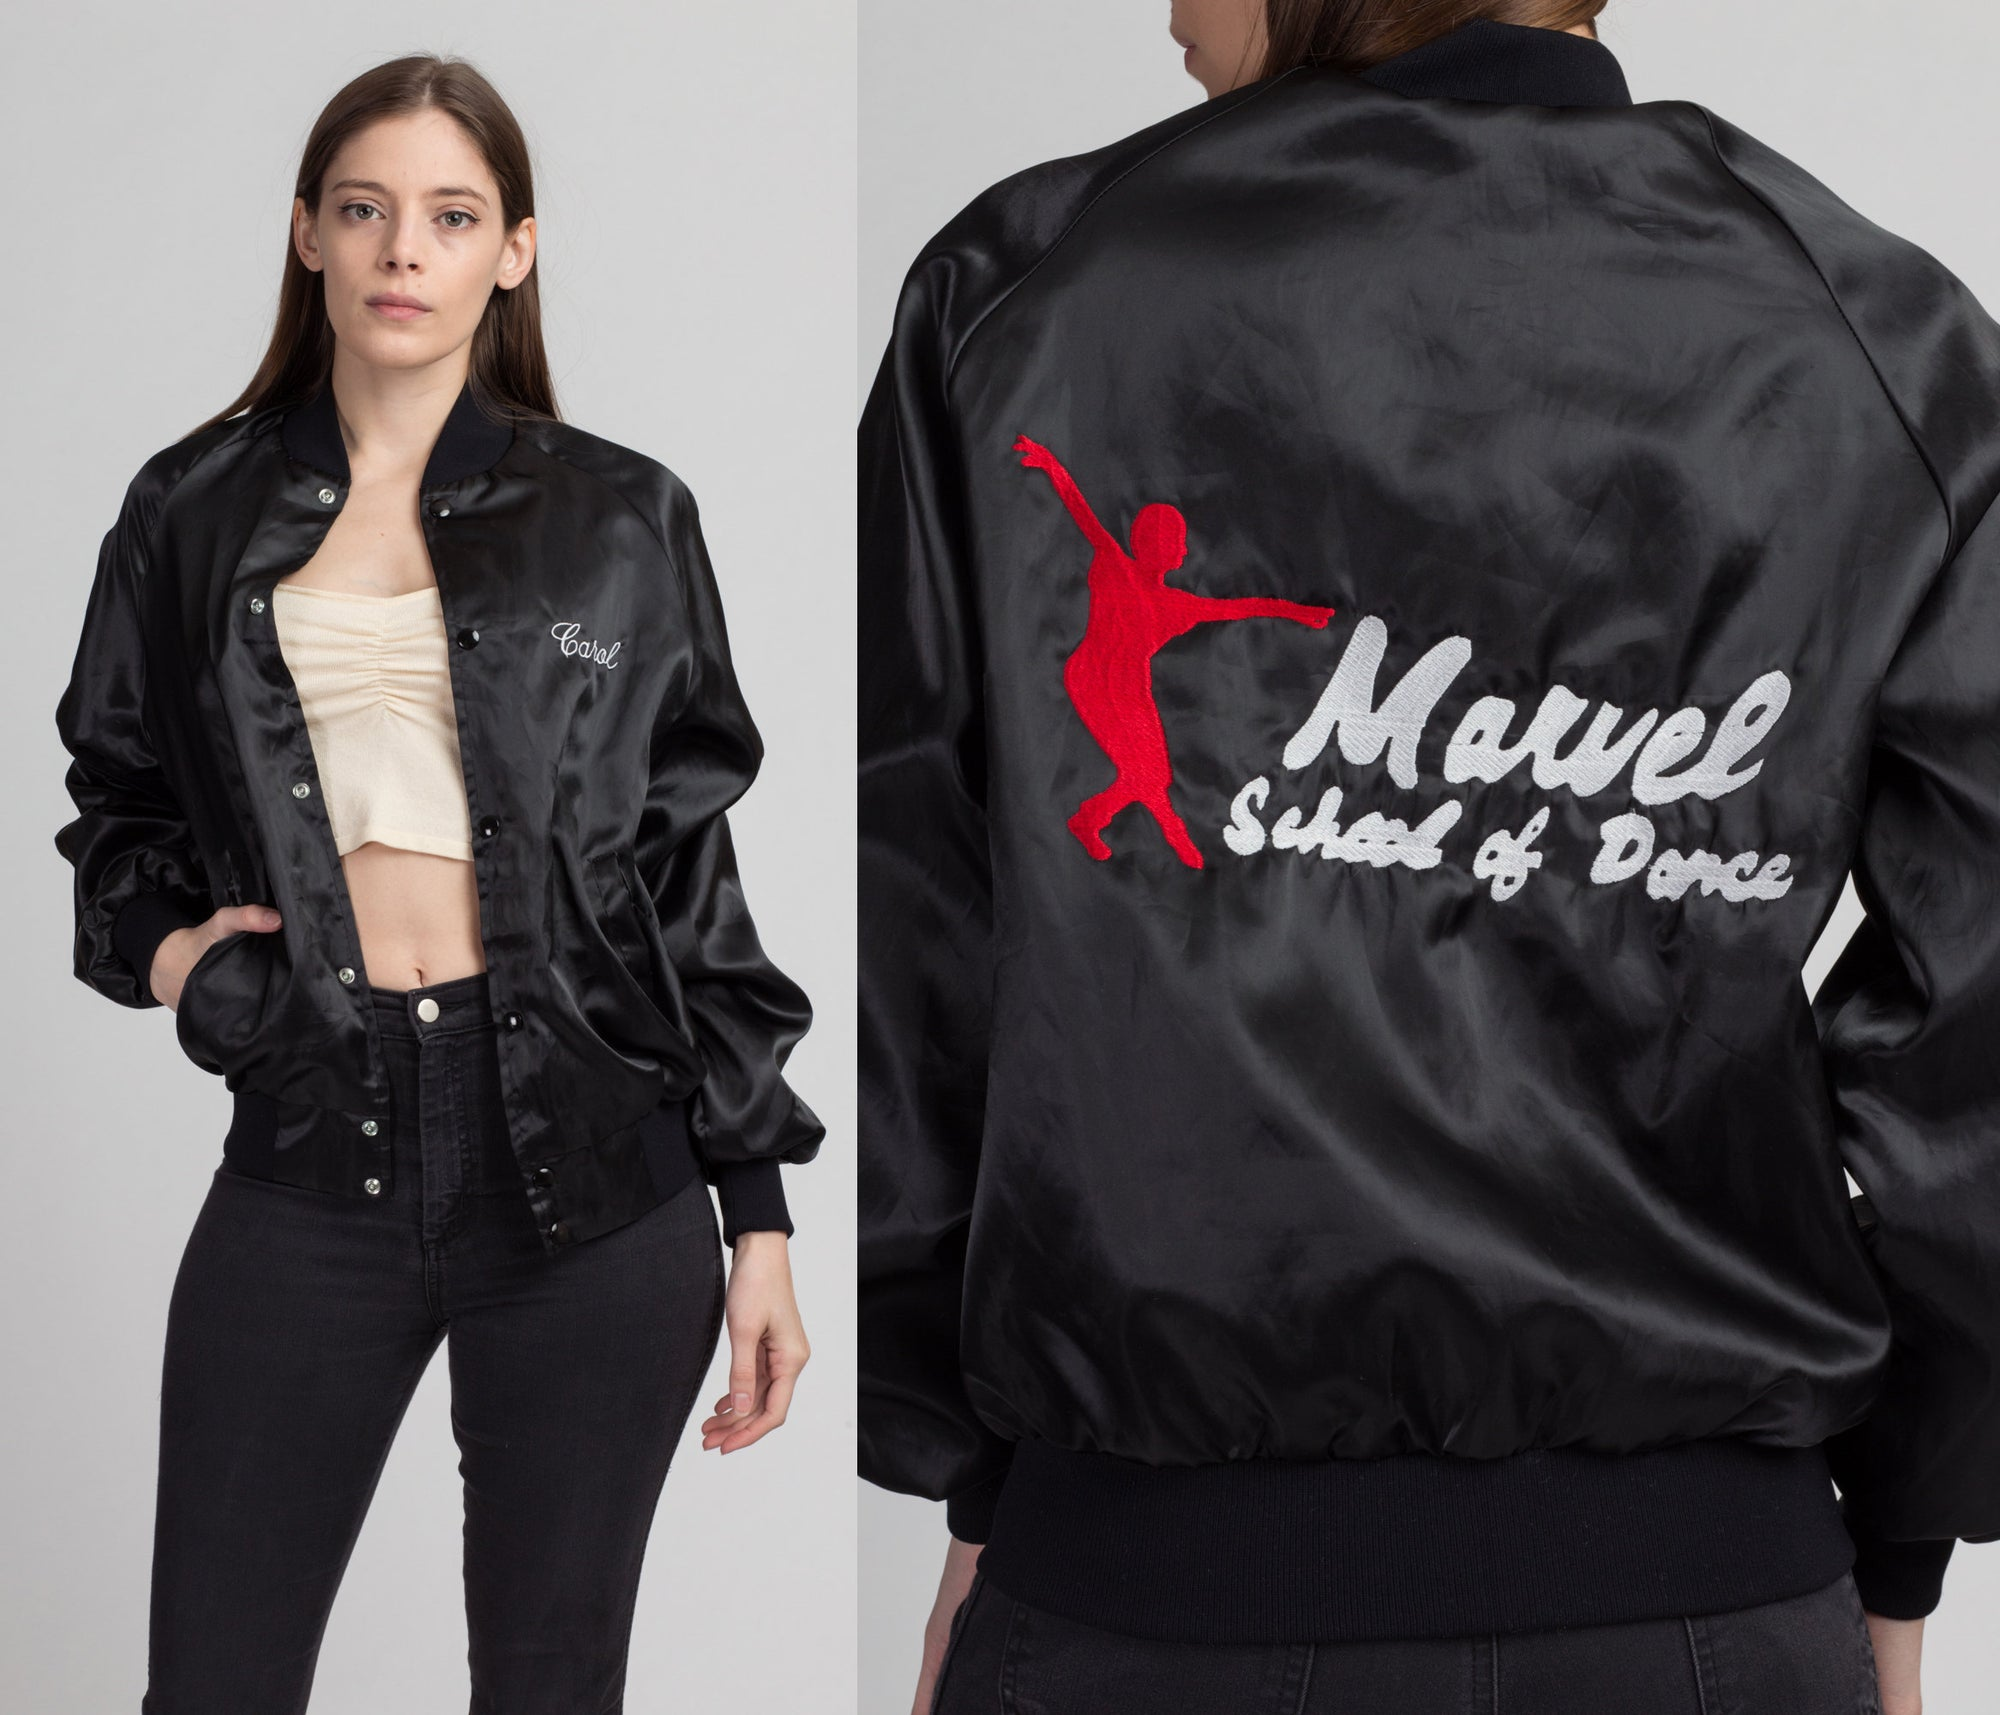 80s Marvel School Of Dance Satin Bomber Jacket - Men's Small | Vintage Black Snap Button Varsity Windbreaker Coat